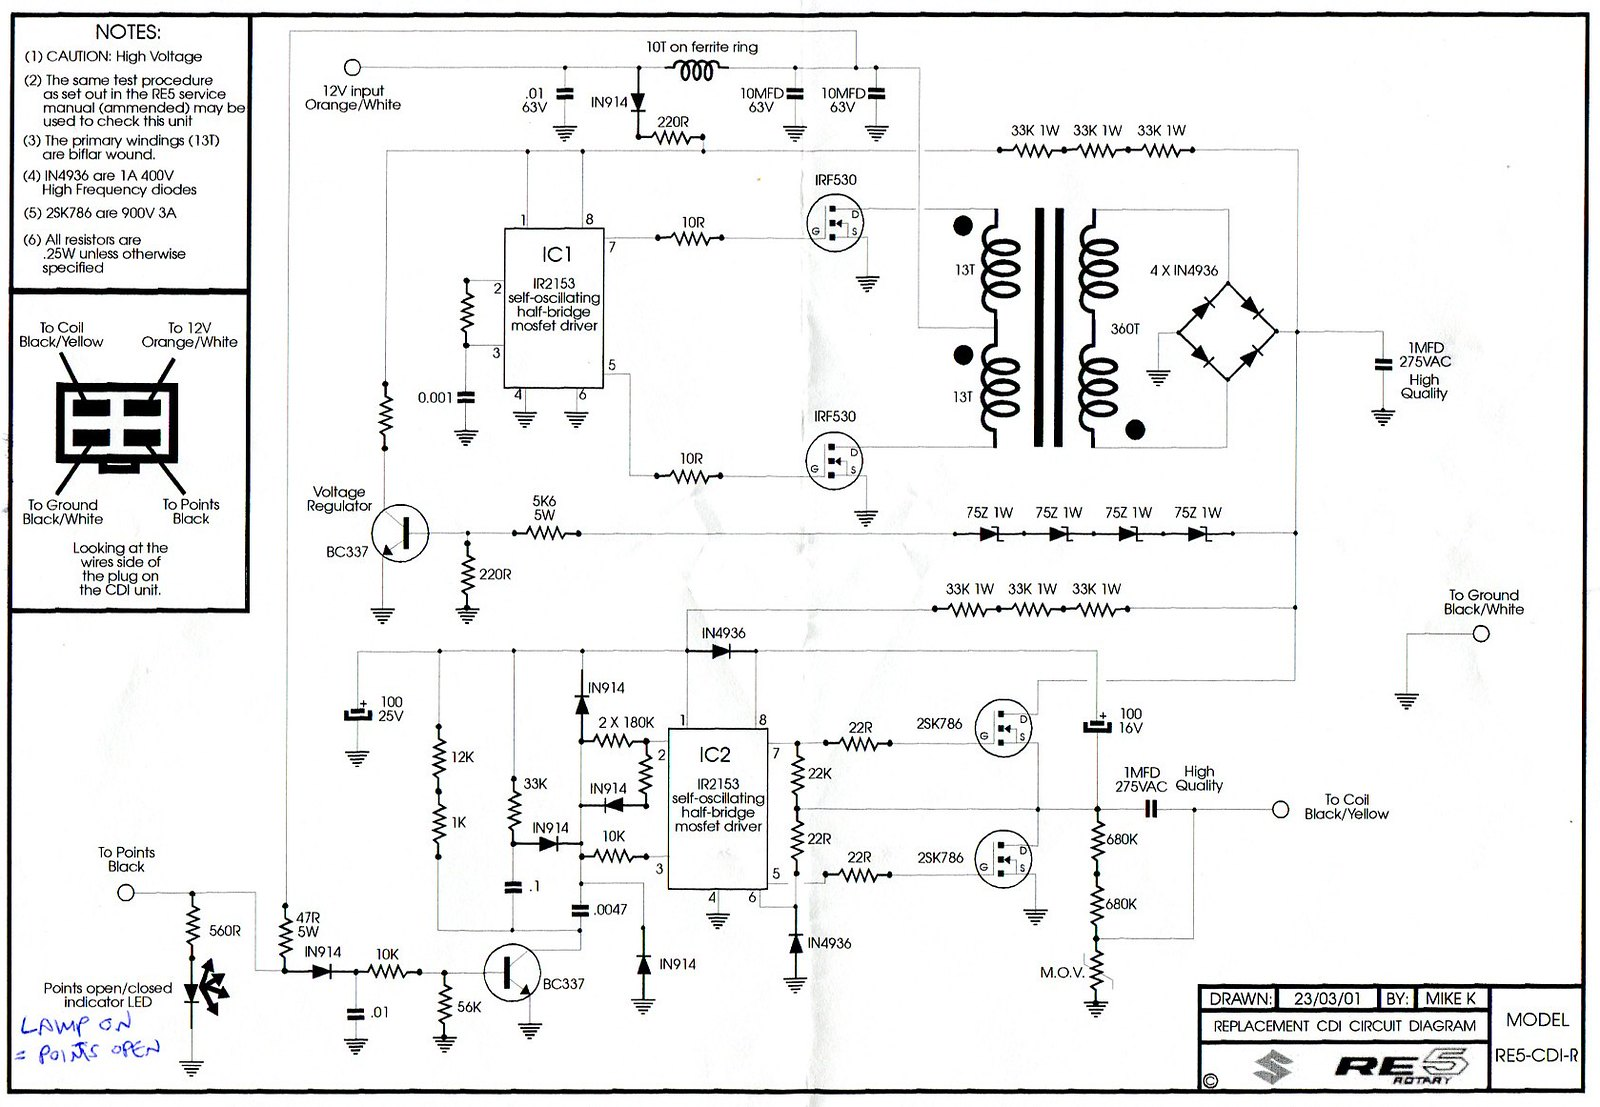 87 Rx7 Ecu Wiring Diagram Get Free Image About Wiring Diagram